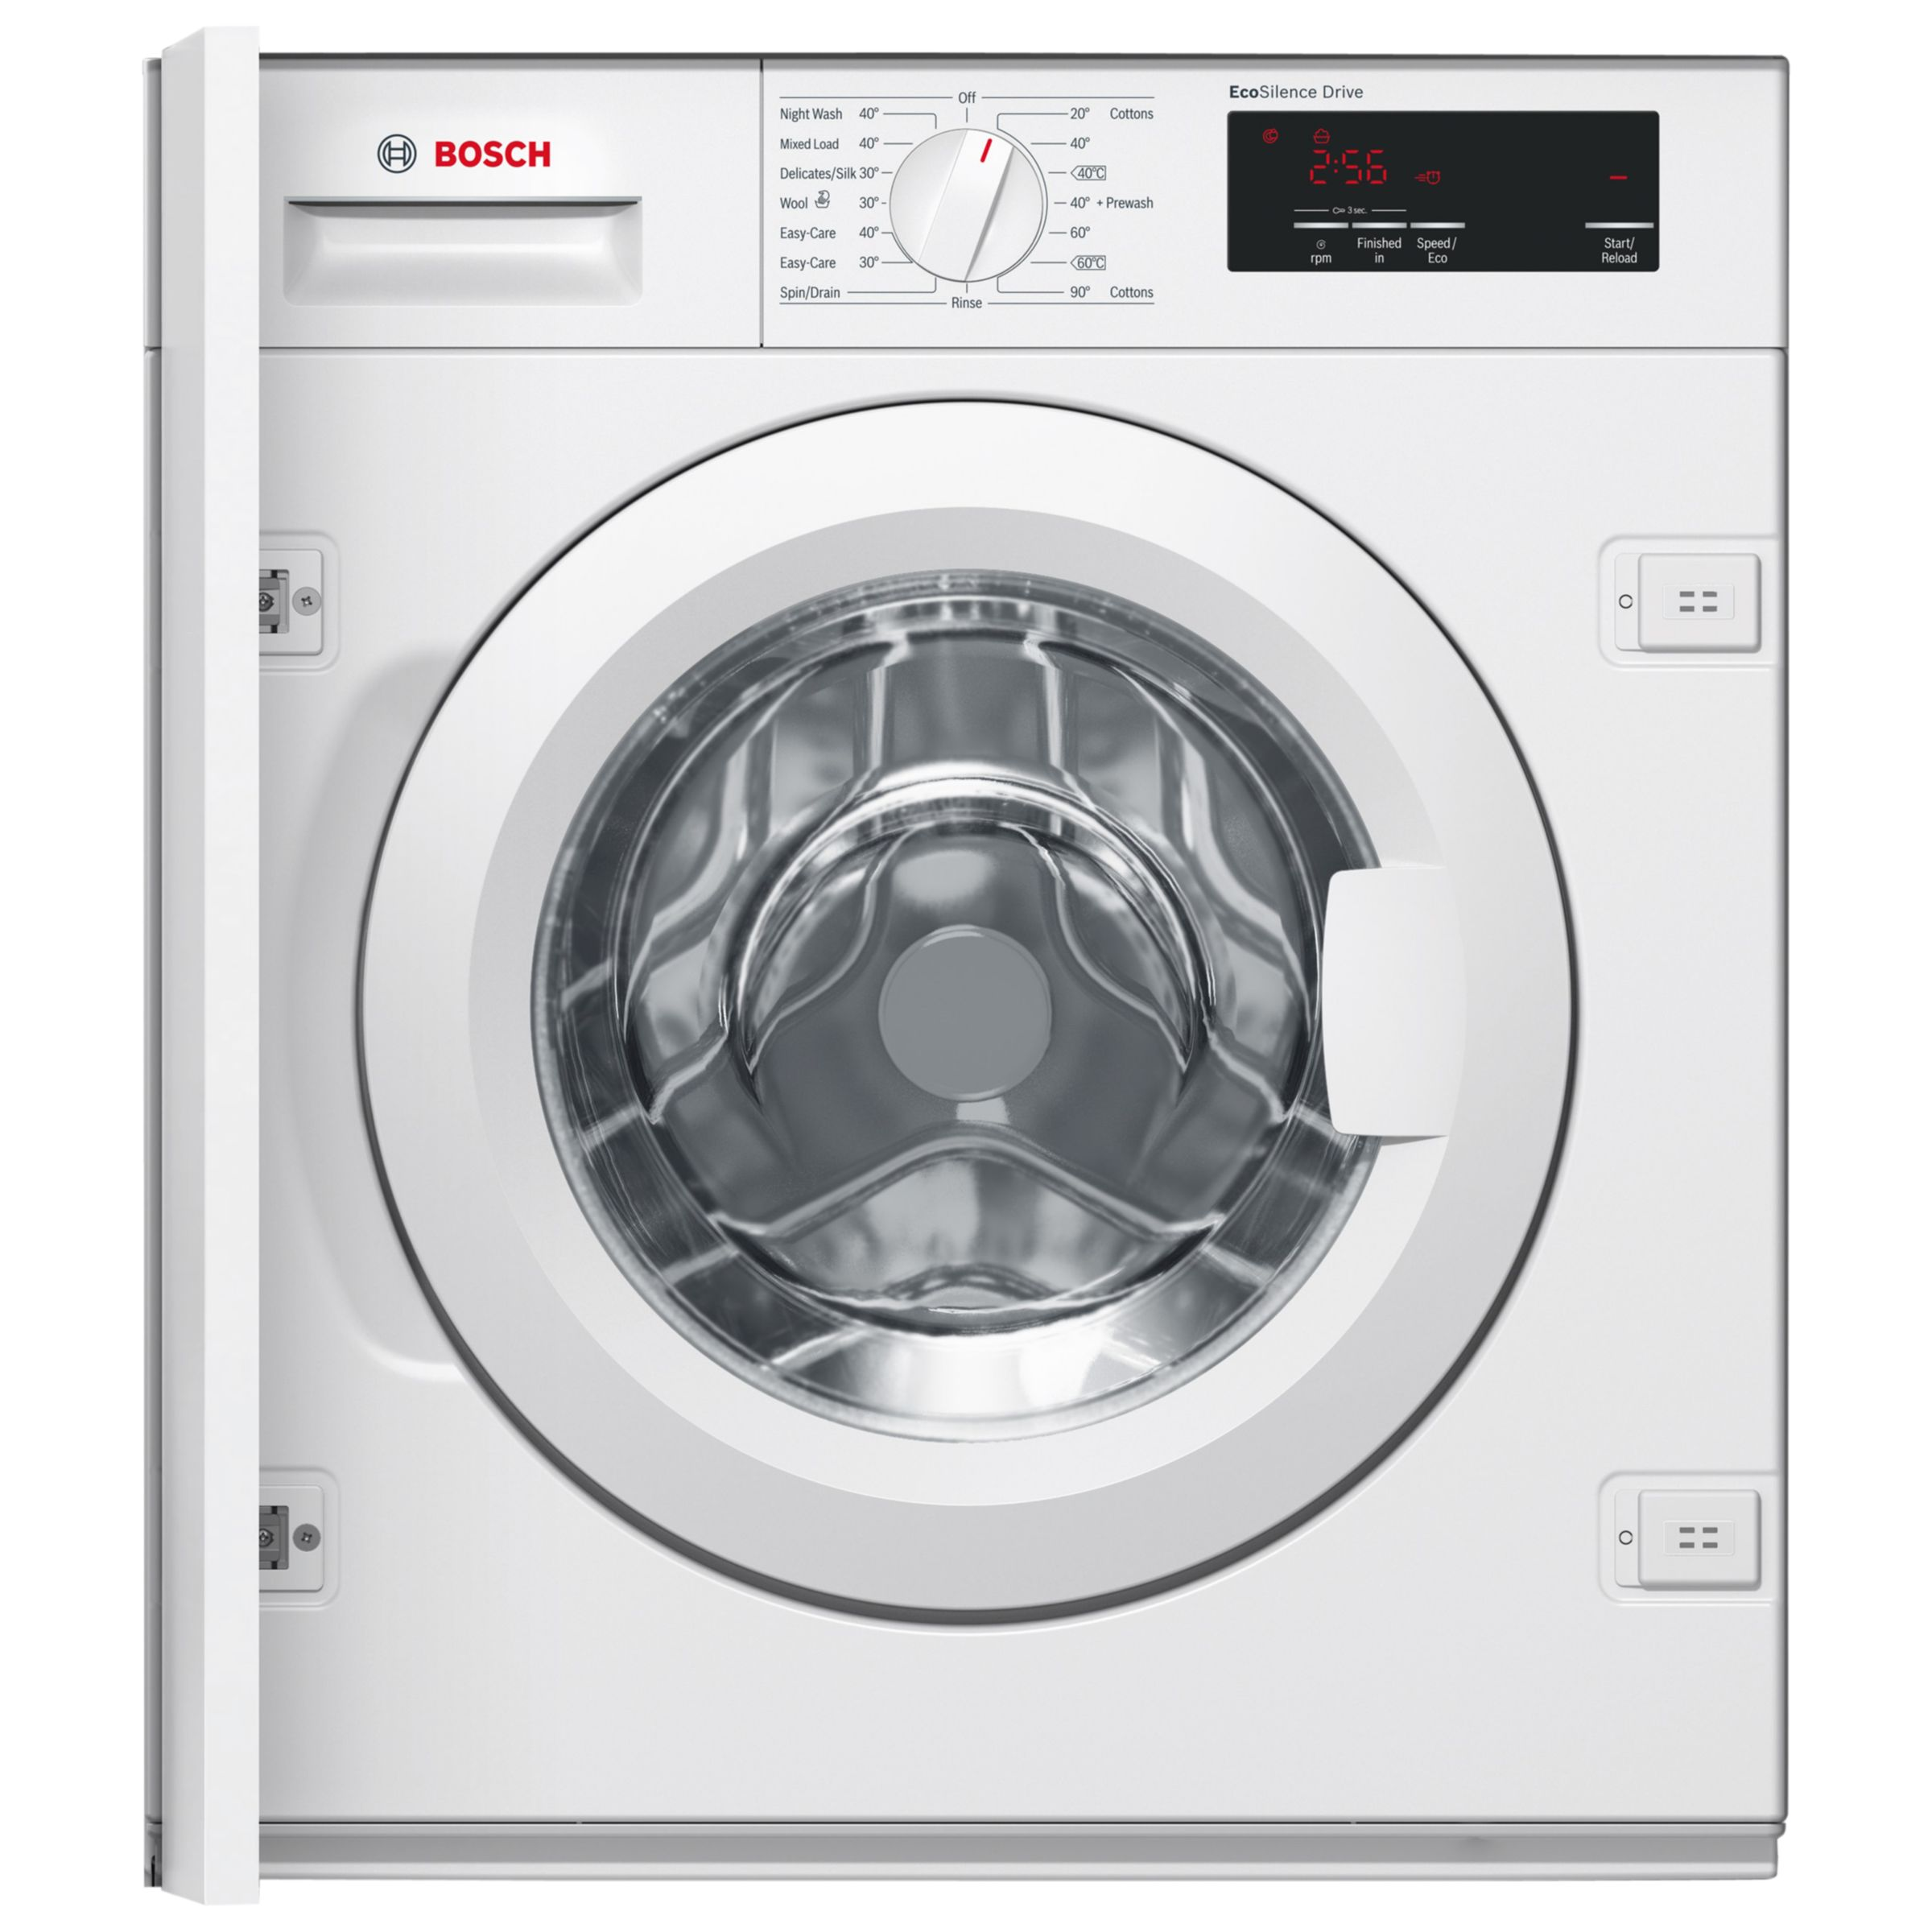 Bosch Bosch WIW28300GB Integrated Washing Machine, 8kg Load, A+++ Energy Rating, 1355rpm Spin, White